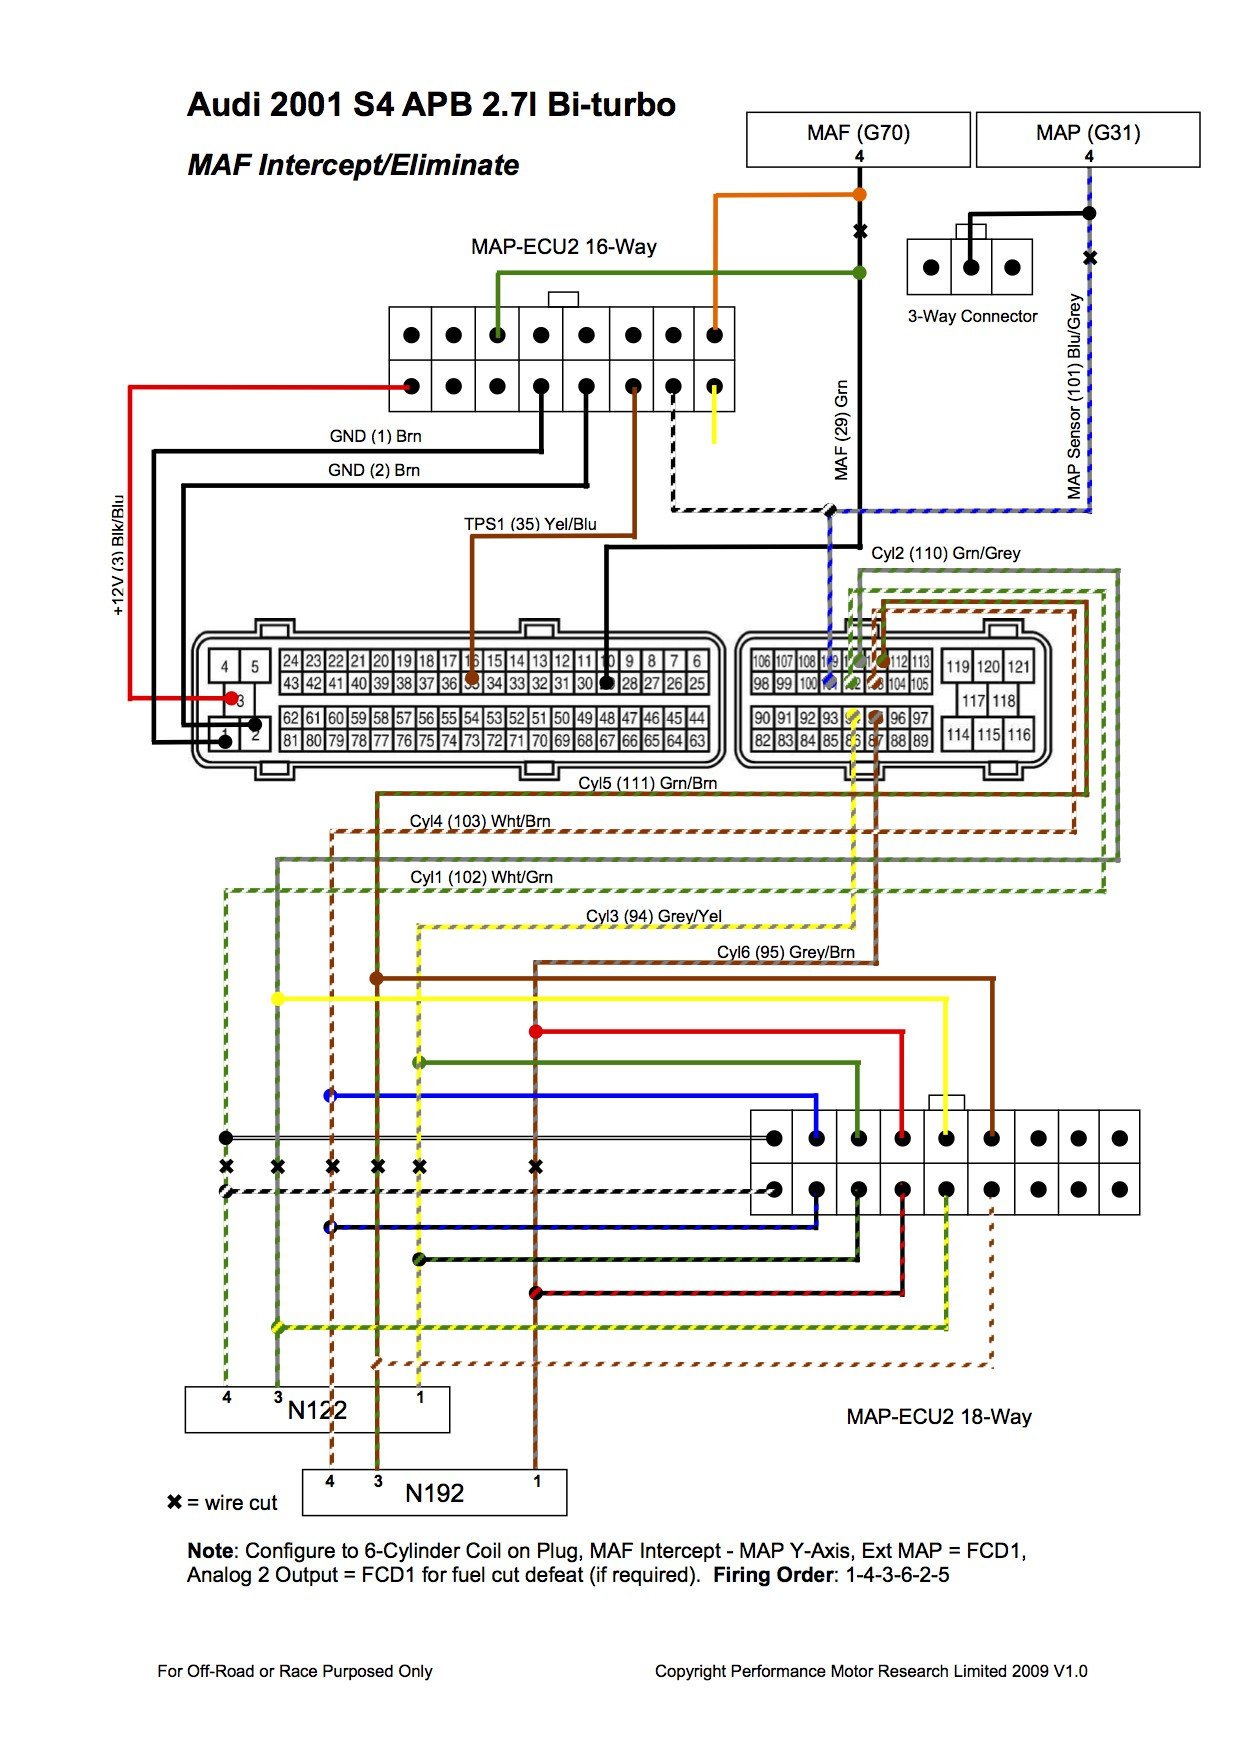 2002 dodge ram 1500 stereo wiring diagram Collection-1995 Dodge Ram 1500  Transmission Wiring Diagram